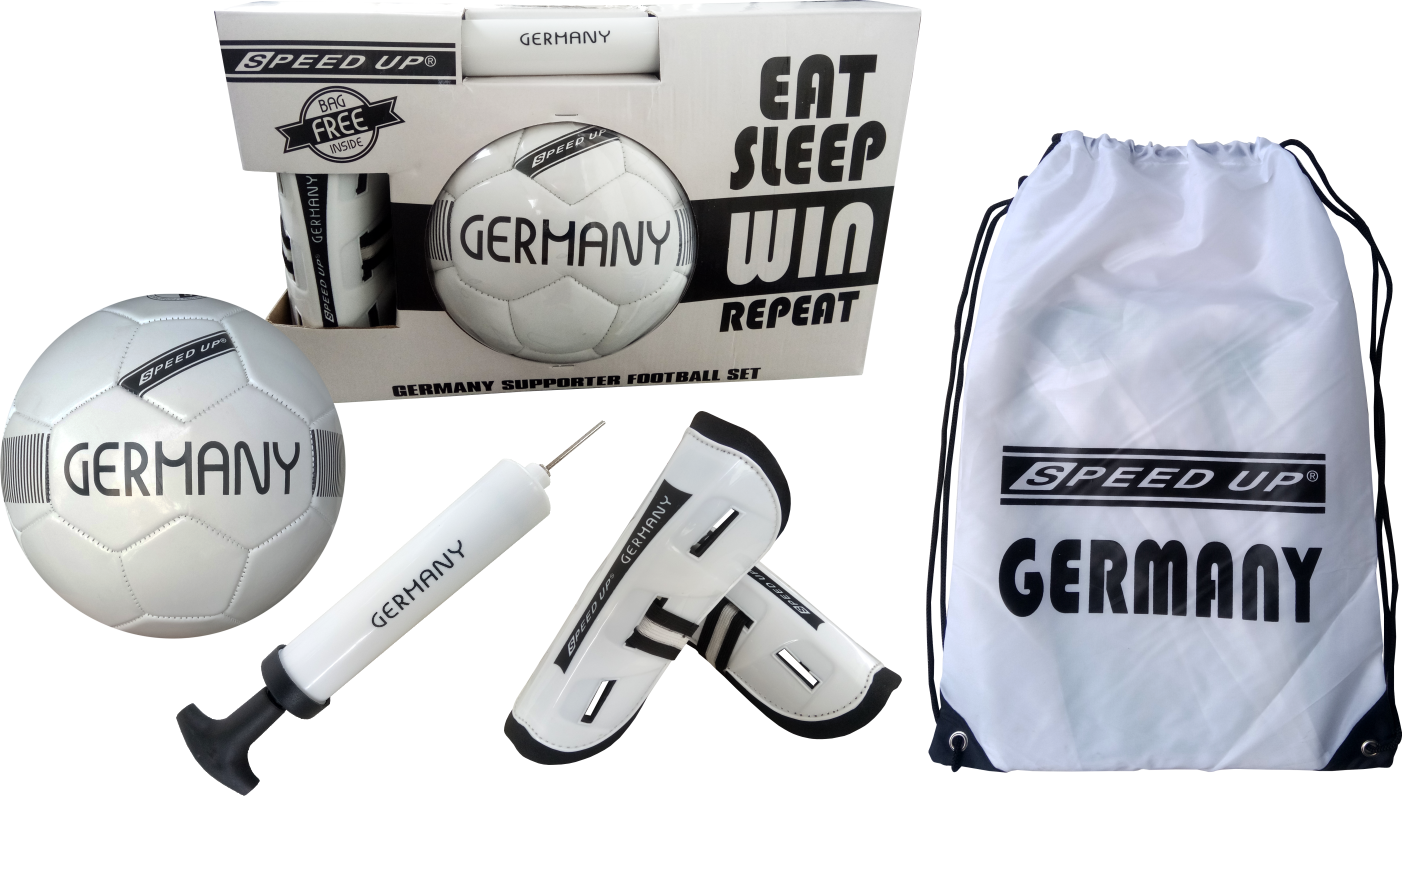 SUPORTER FOOTBALL SET GERMANY